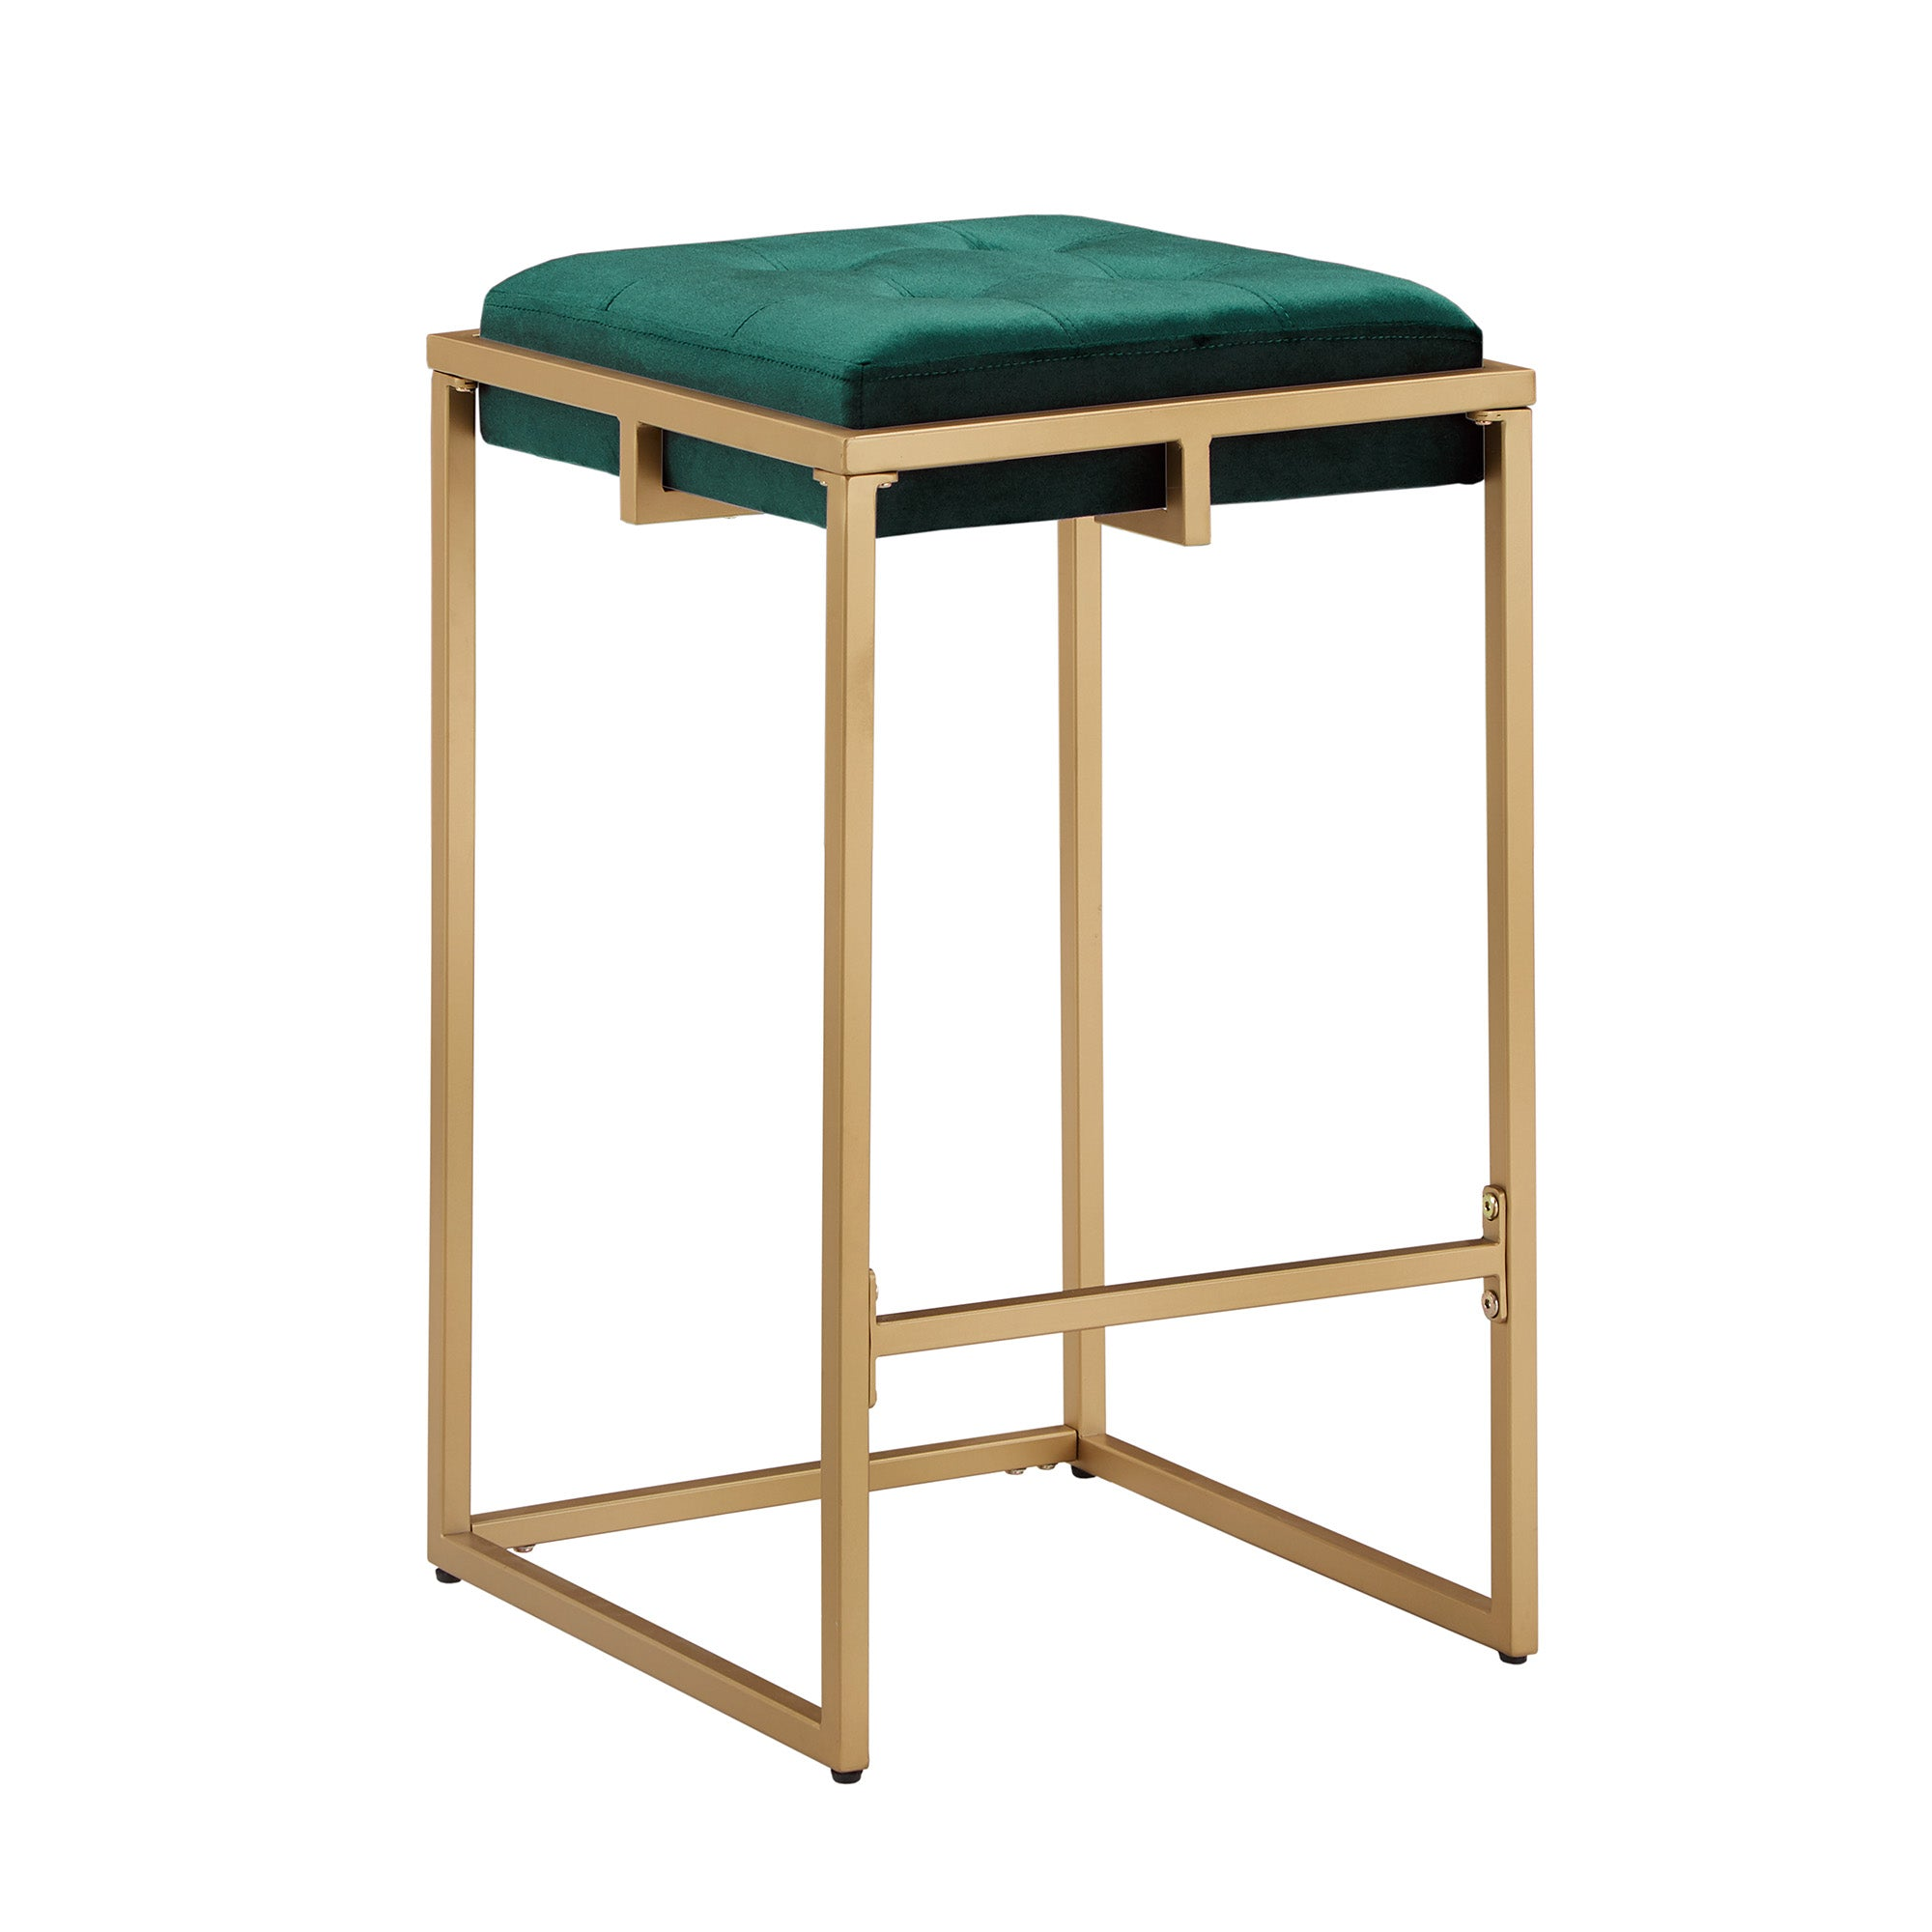 Gold Finish Velvet Button Tufted Bar Stools (Set of 2) - Counter Height - Dark Green